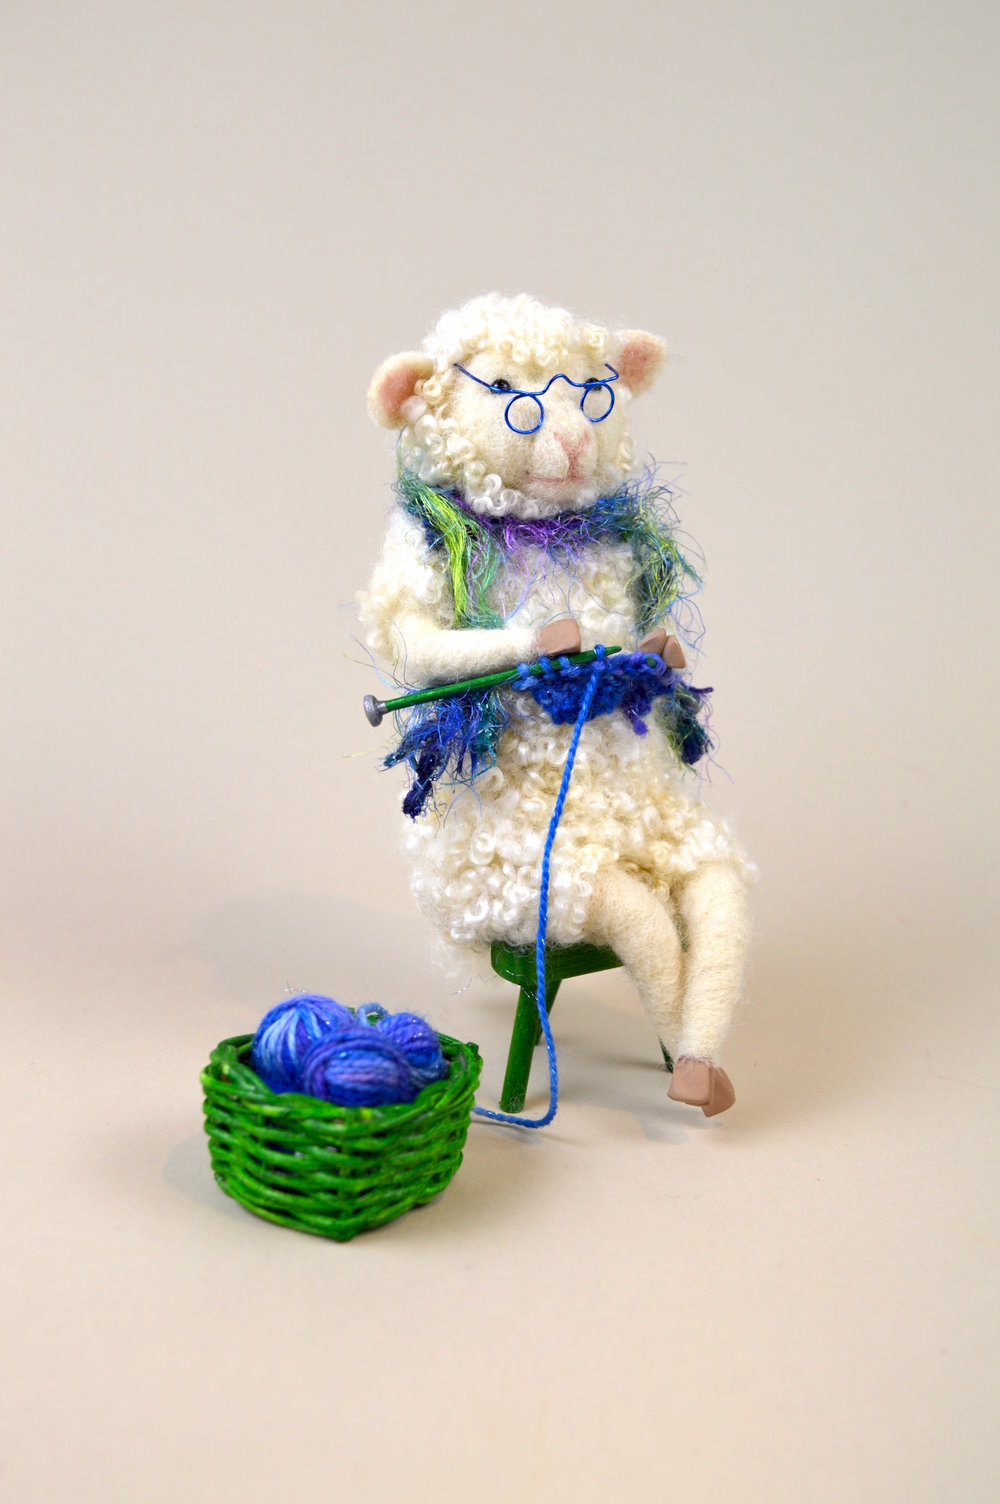 Knitting Sheep in Blue and Green